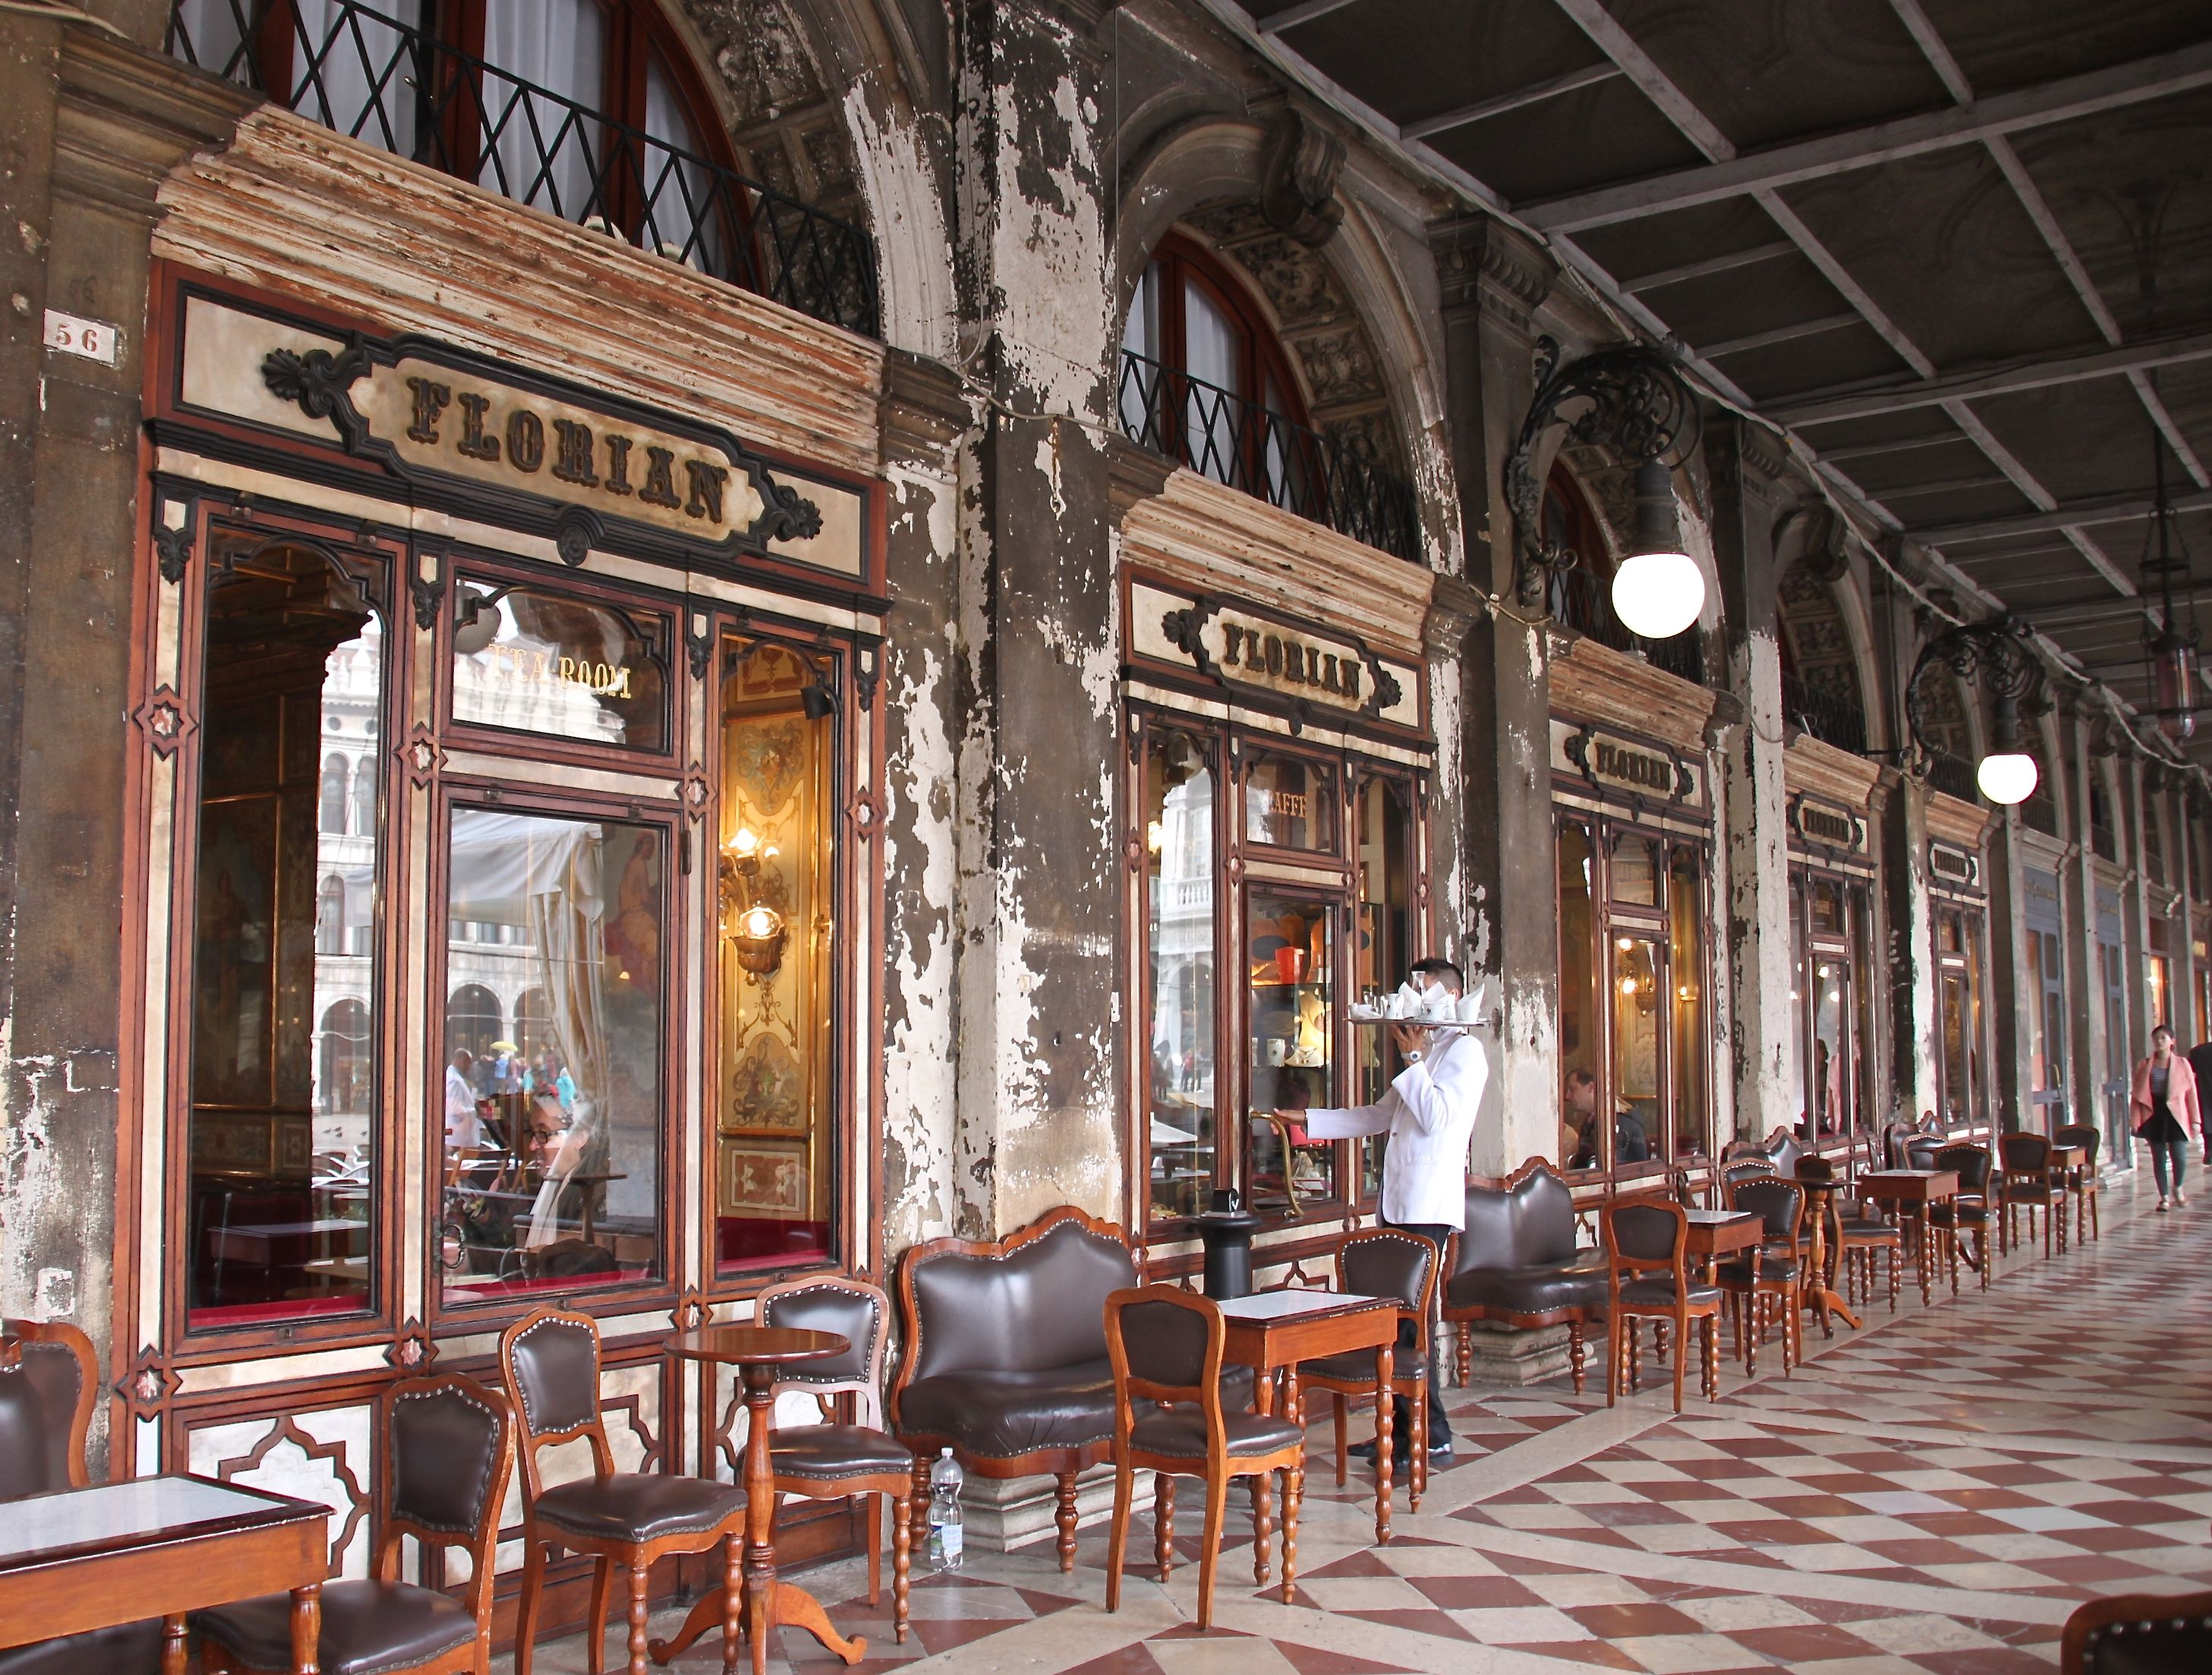 Caffe Florian, Venice's oldest coffee shop, has served hot chocolate for over 250 years